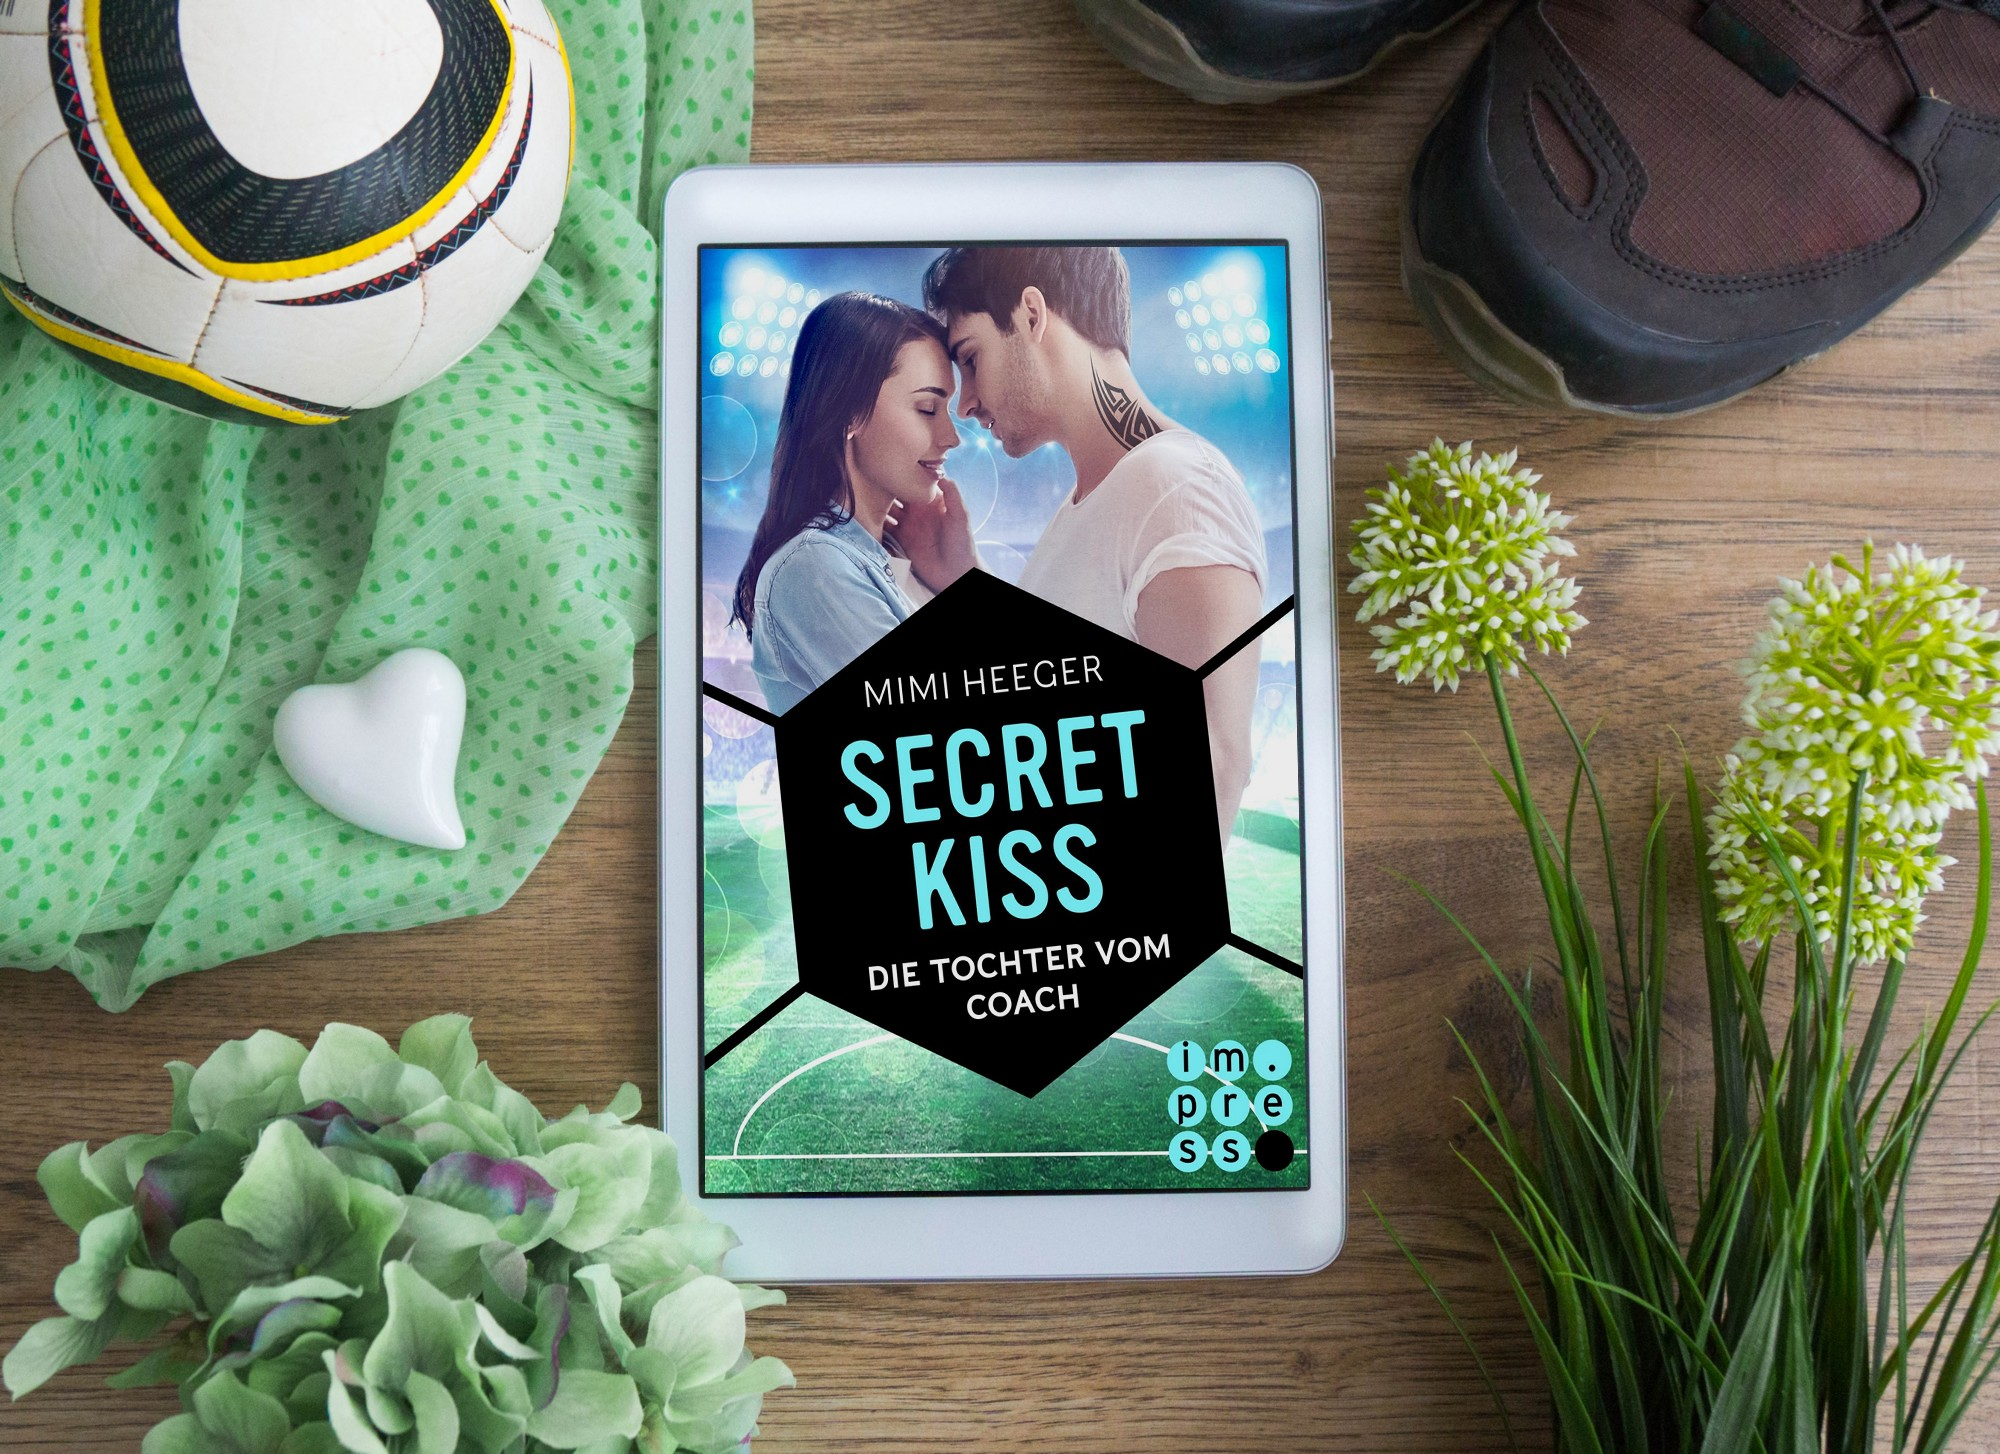 Secret Kiss: Die Tochter vom Coach – Mimi Heeger graphic